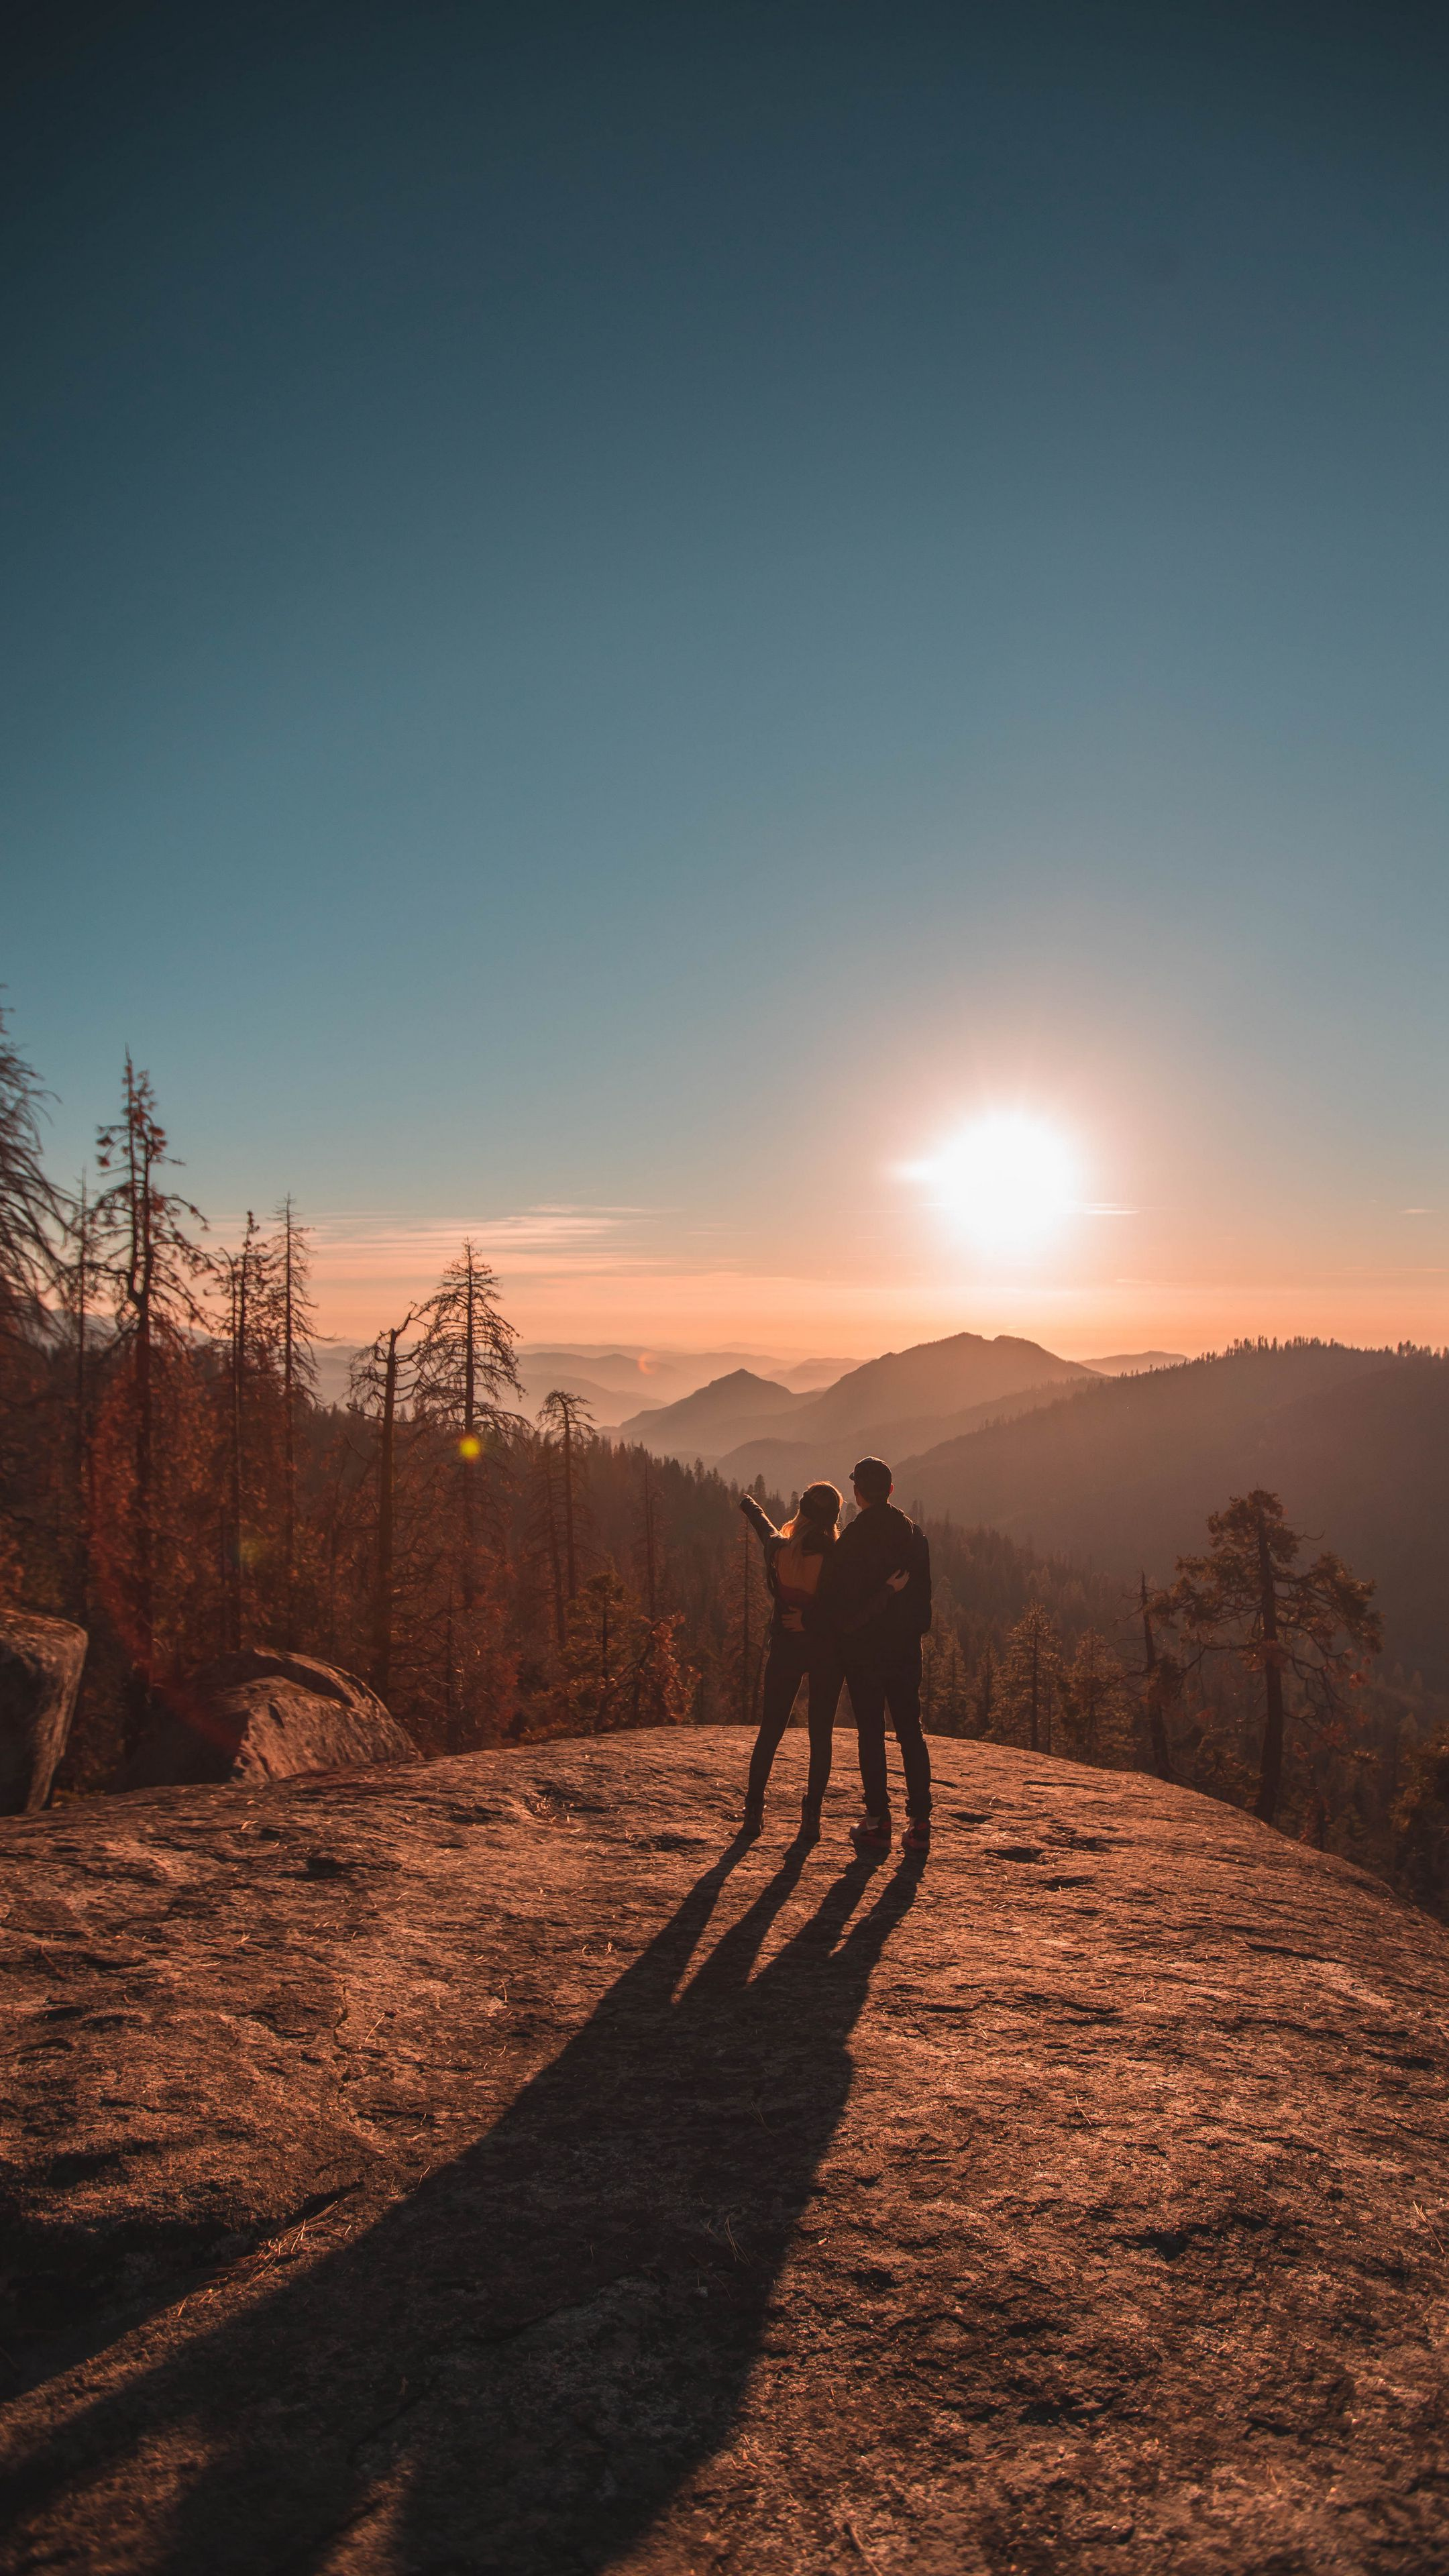 2160x3840 Wallpaper couple, mountains, travel, sunset, sequoia national park, united states